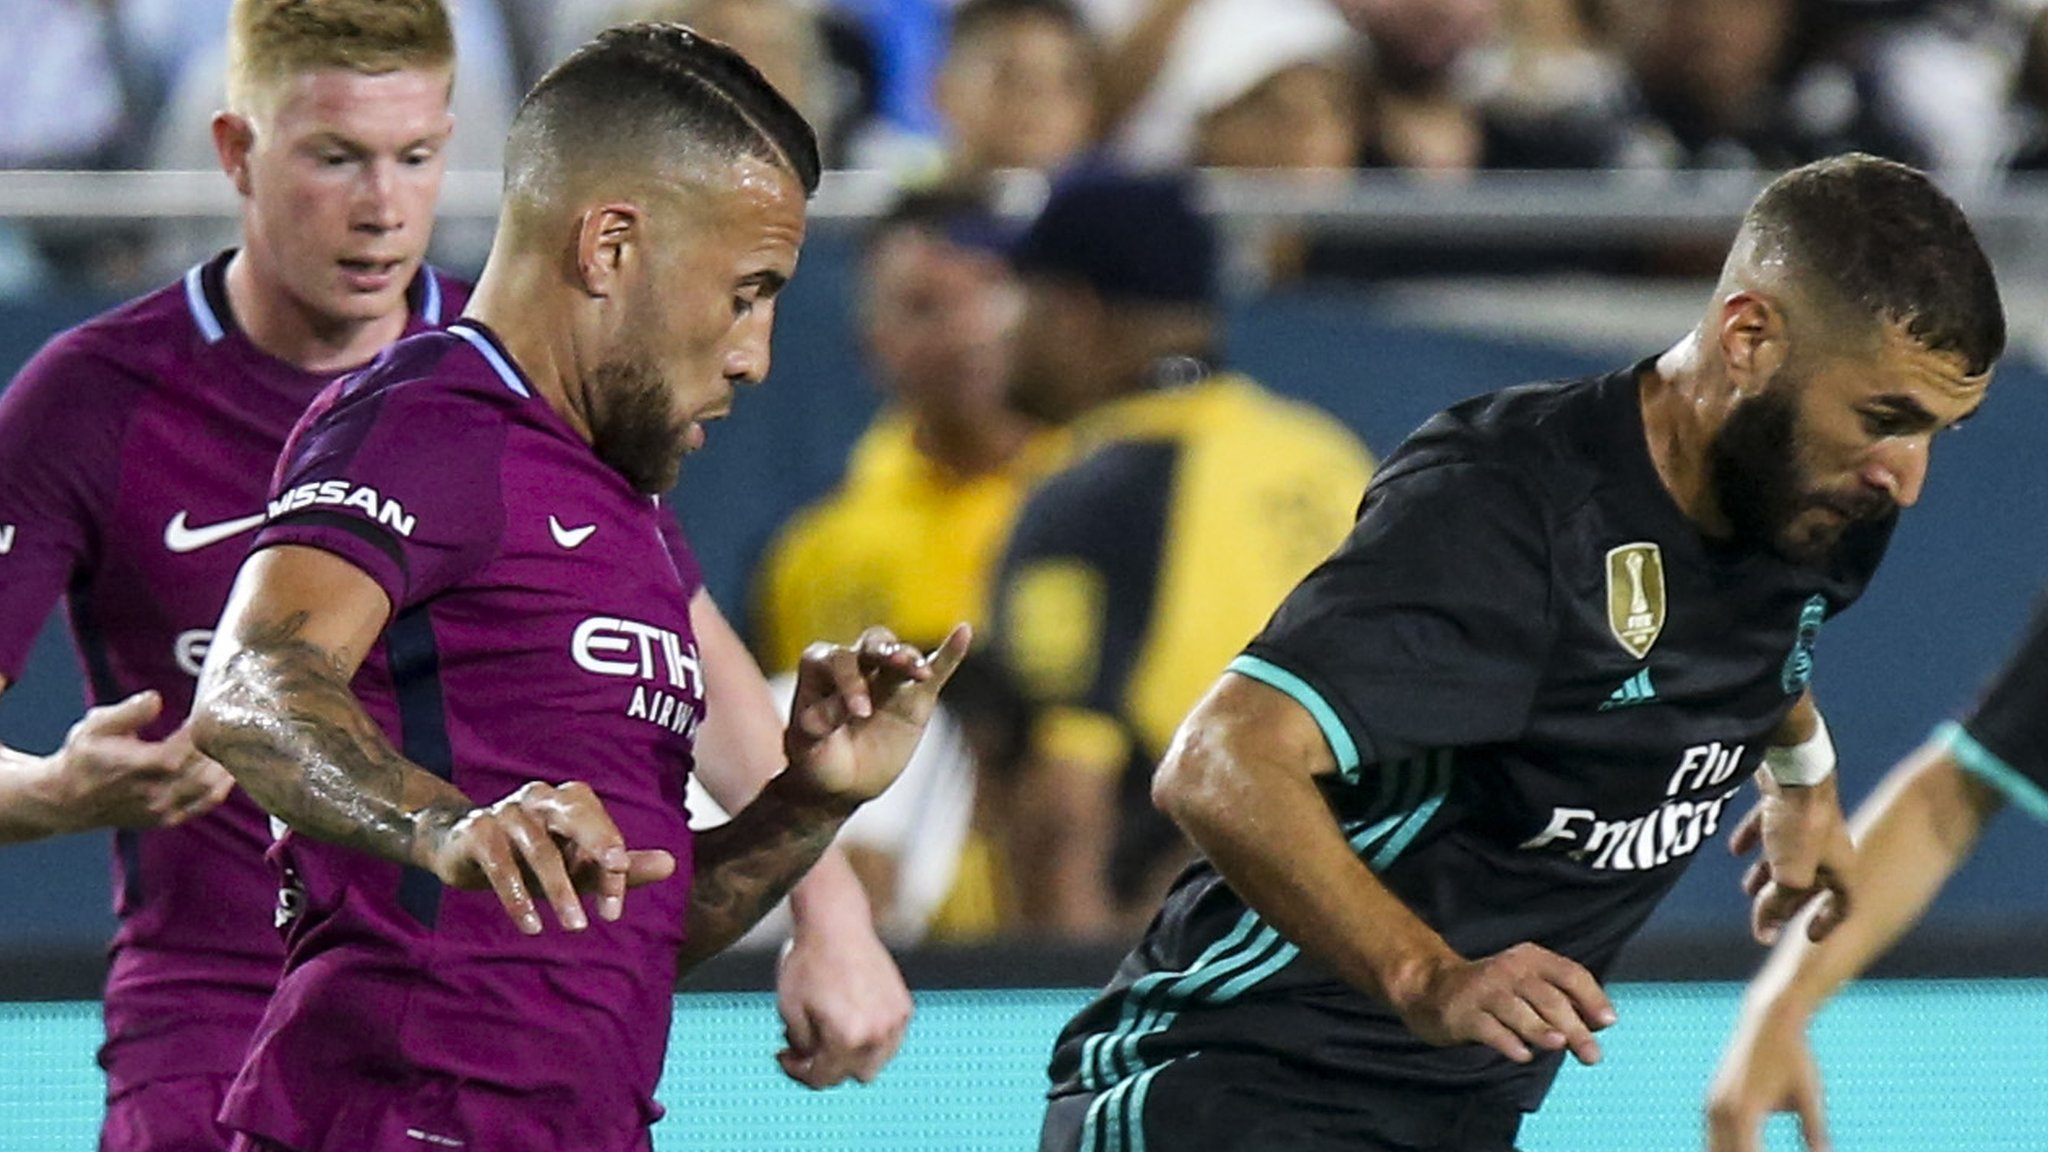 Mendy missing, but Man City thrash Real Madrid in LA friendly